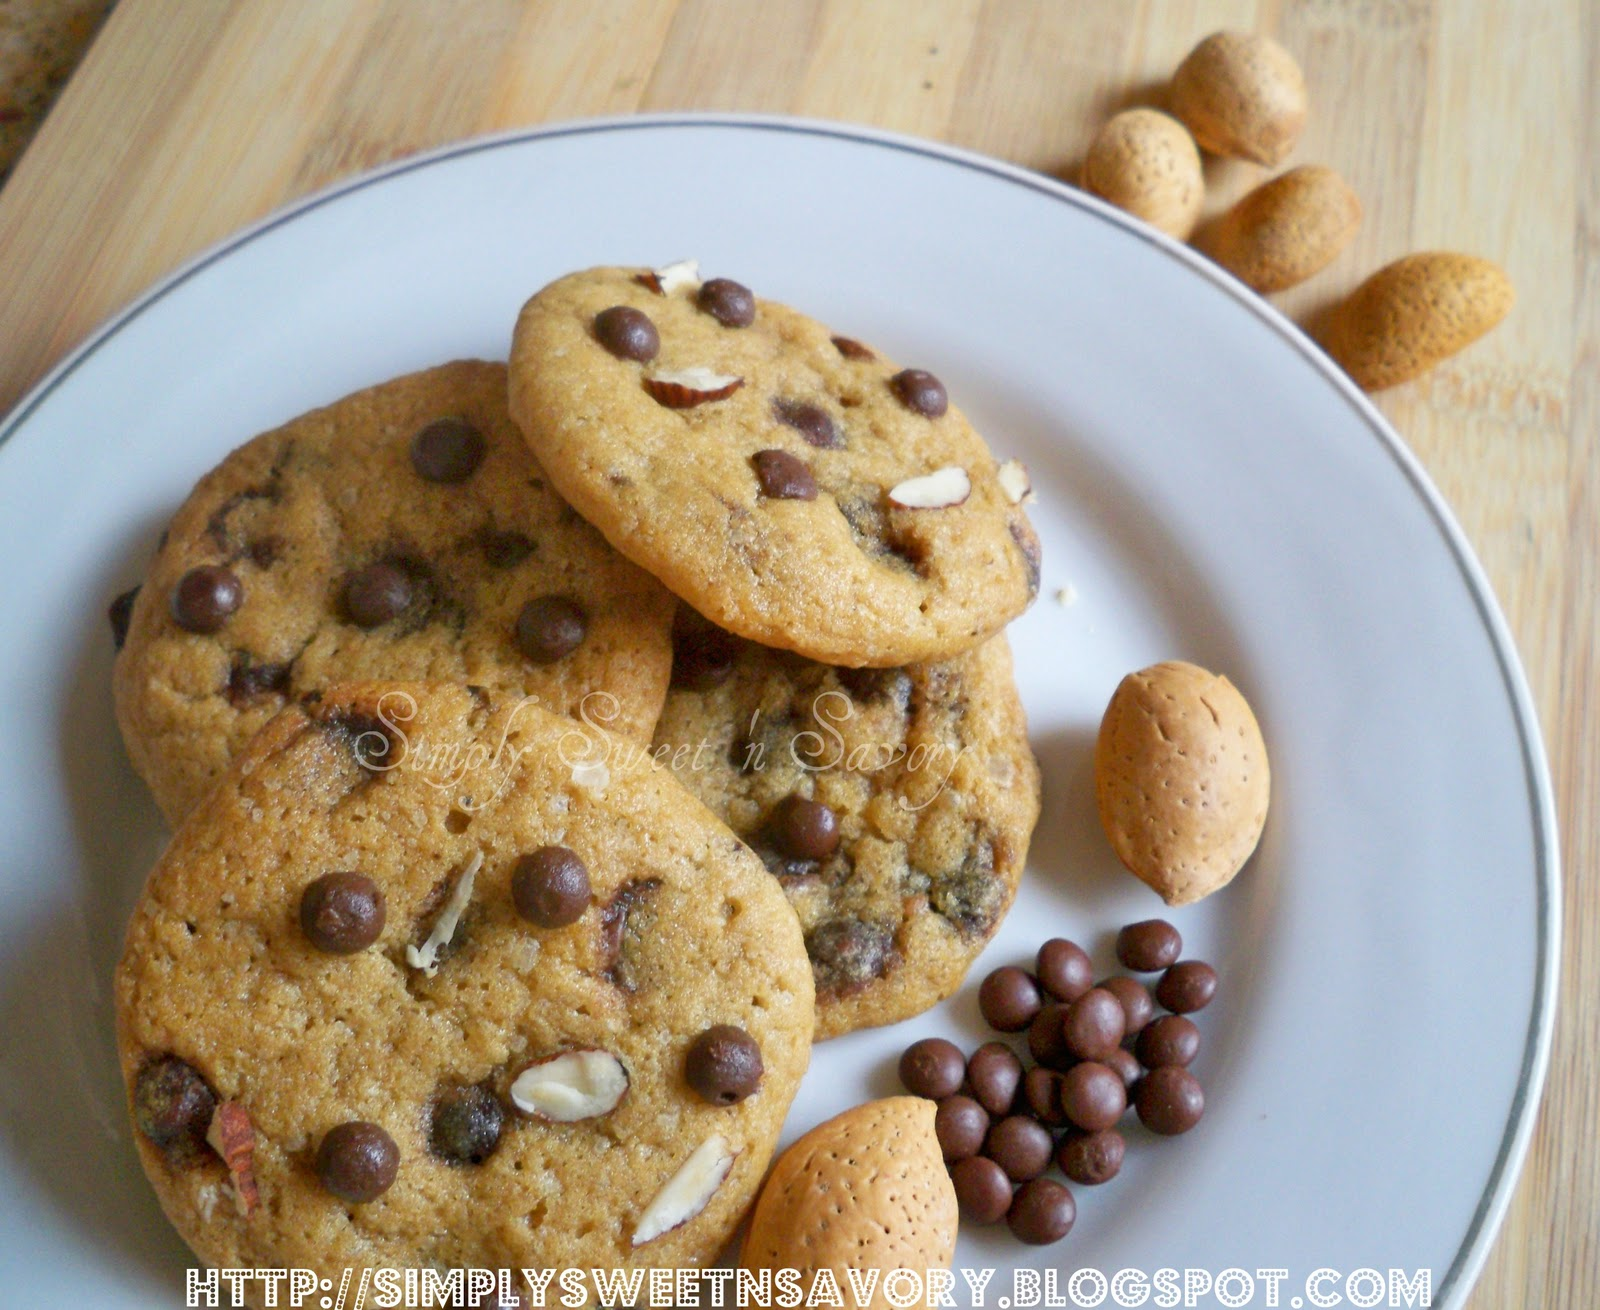 Simply Sweet 'n Savory: Chocolate Chip Cookies